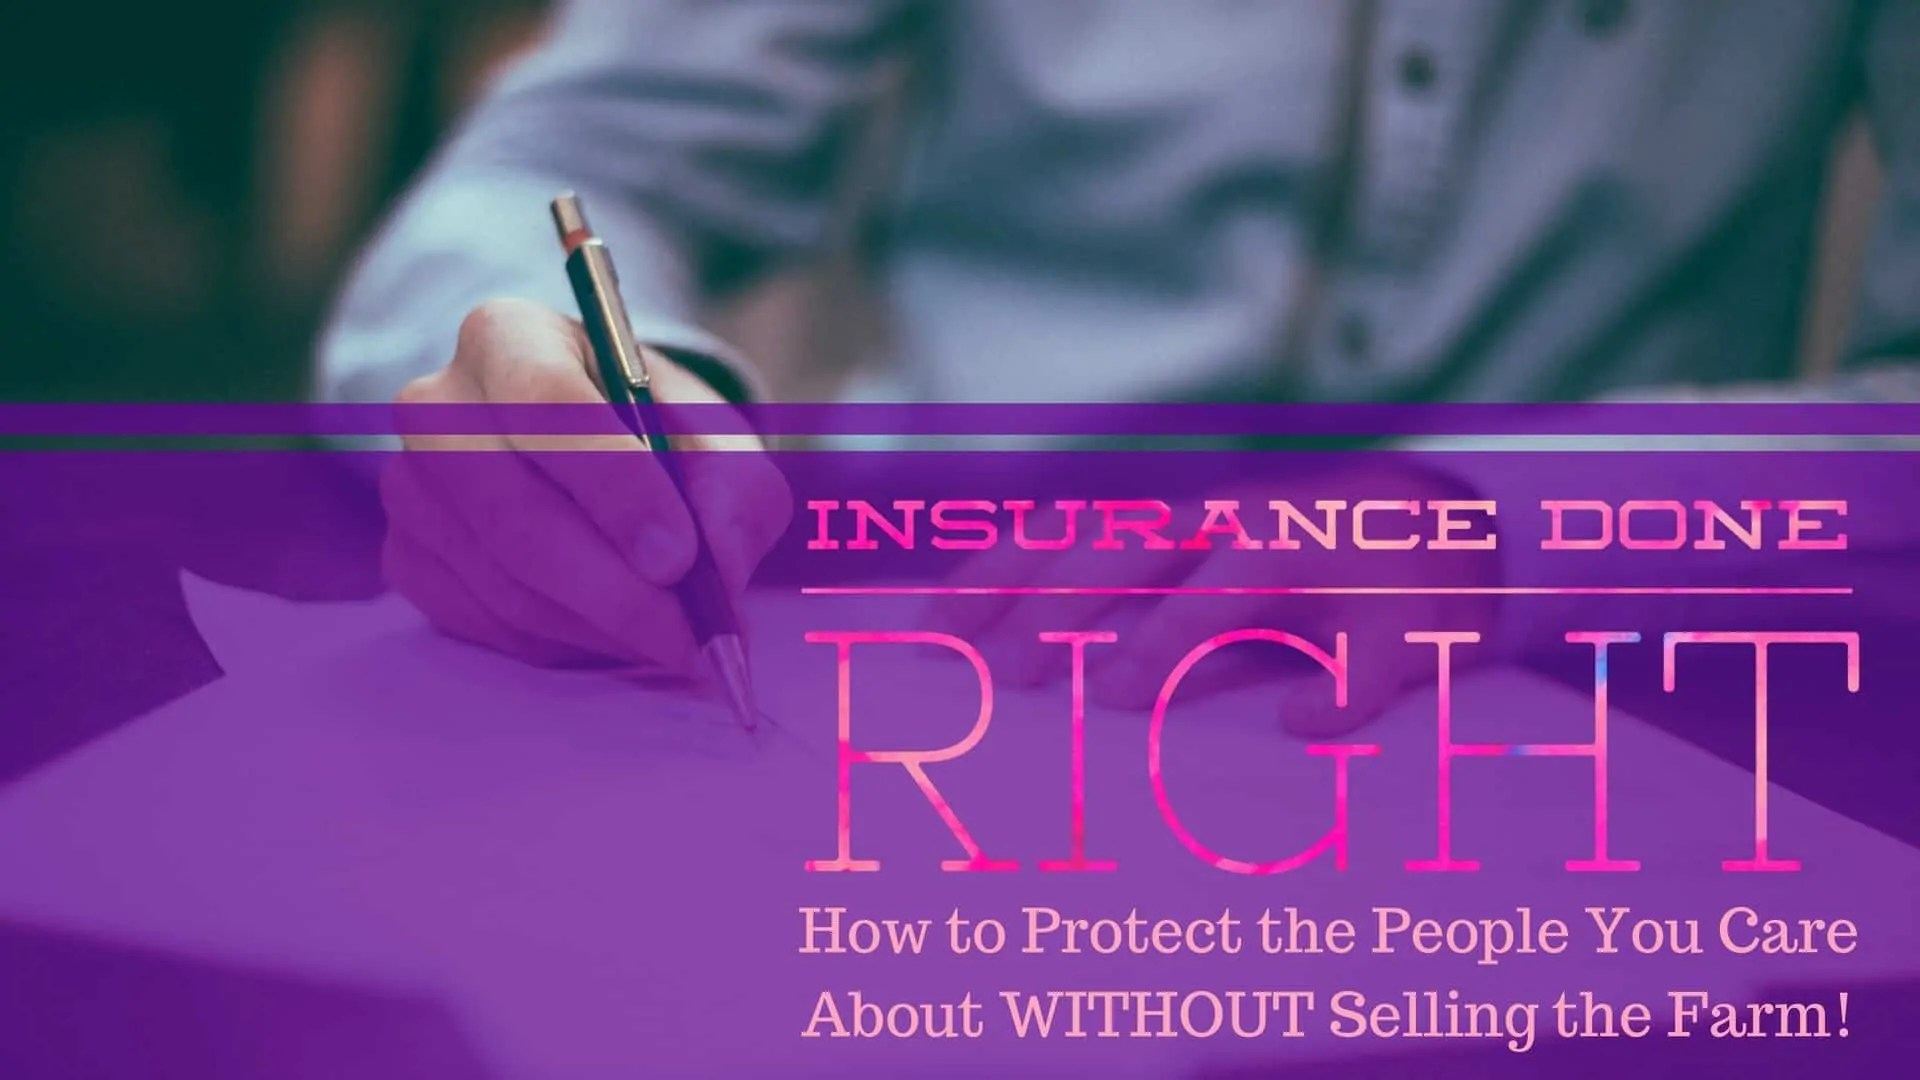 Insurance Done Right — How to Protect the People You Care About WITHOUT Selling the Farm! (Featured Image)